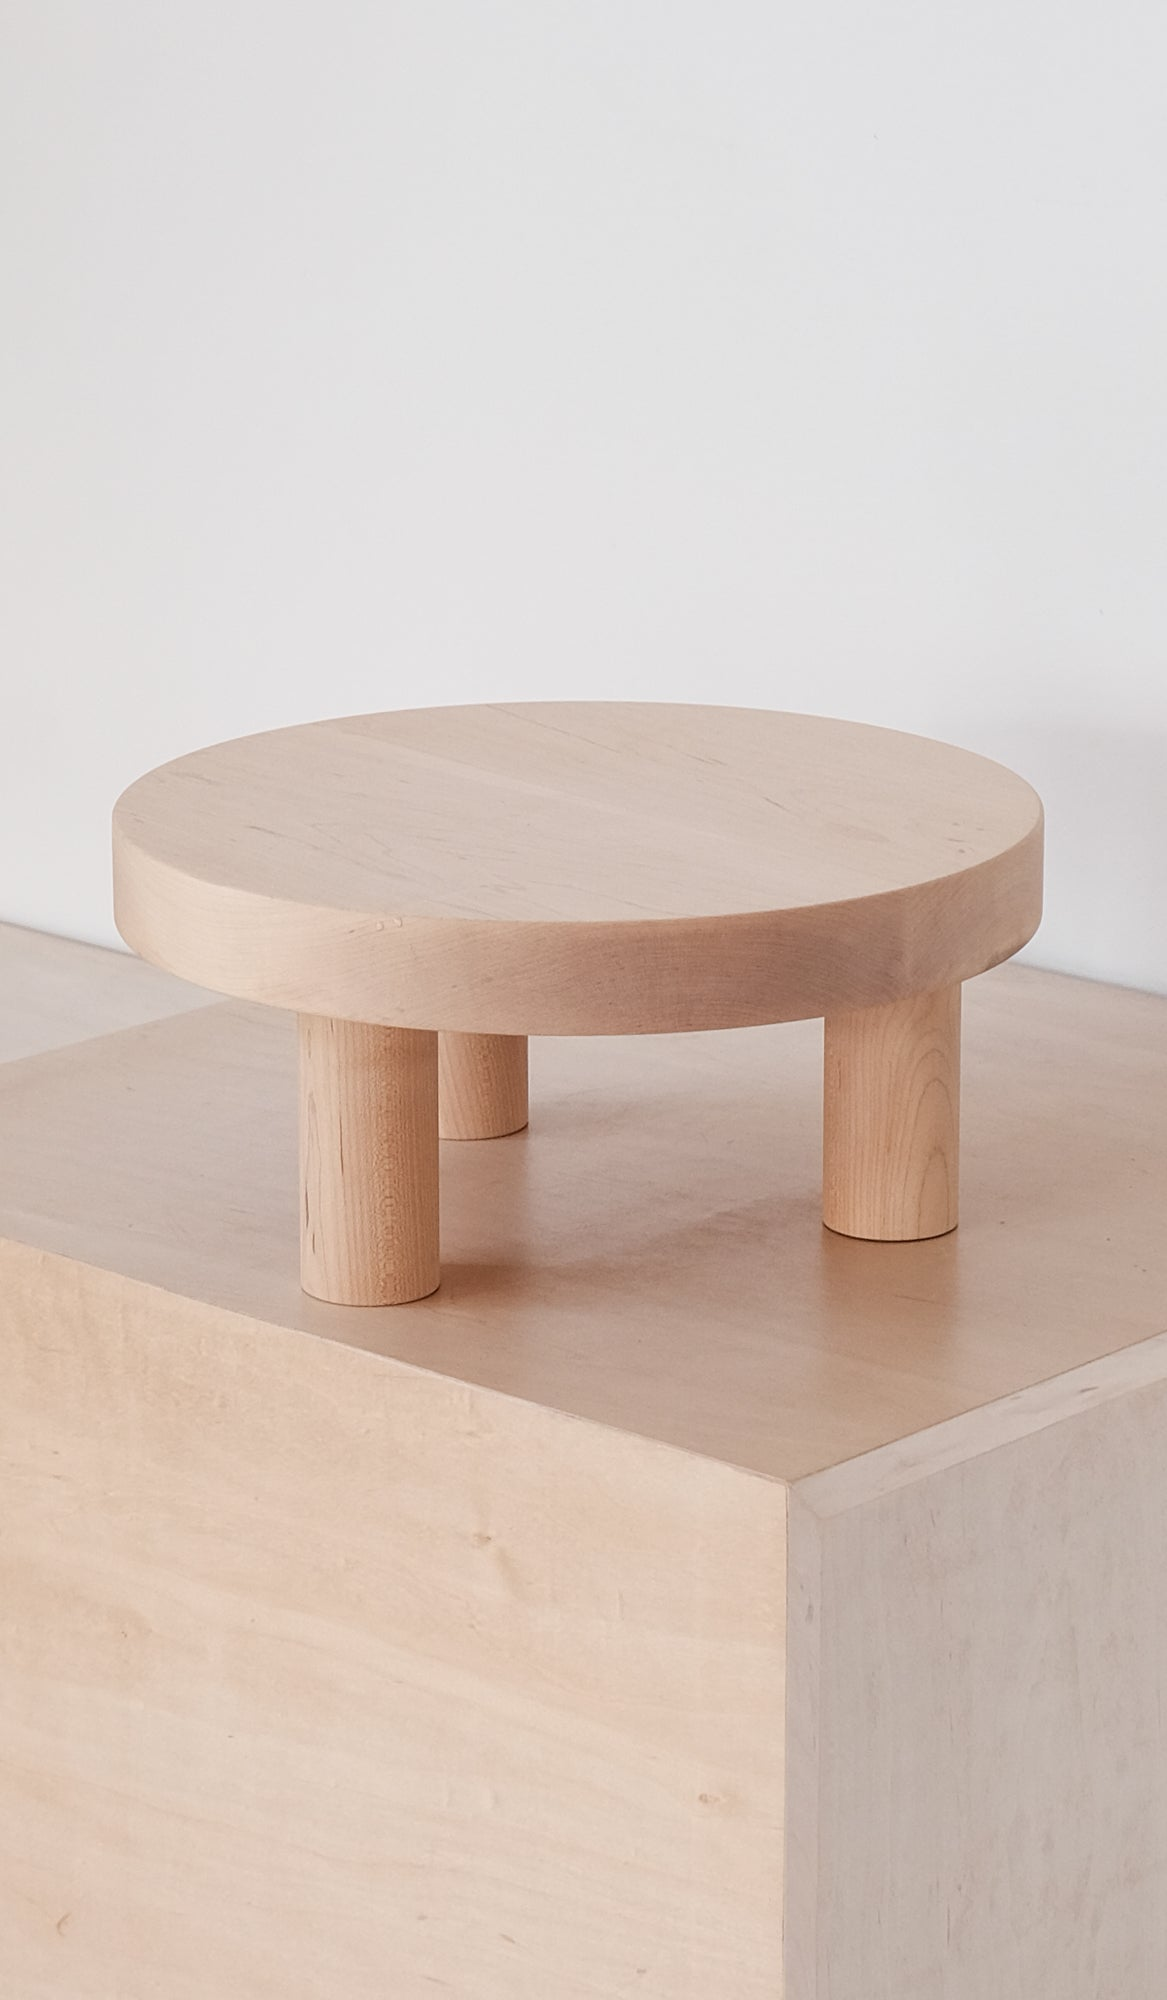 Matthew Philip Williams Low Table: Maple, , Matthew Philip Williams, SPARTAN SHOP